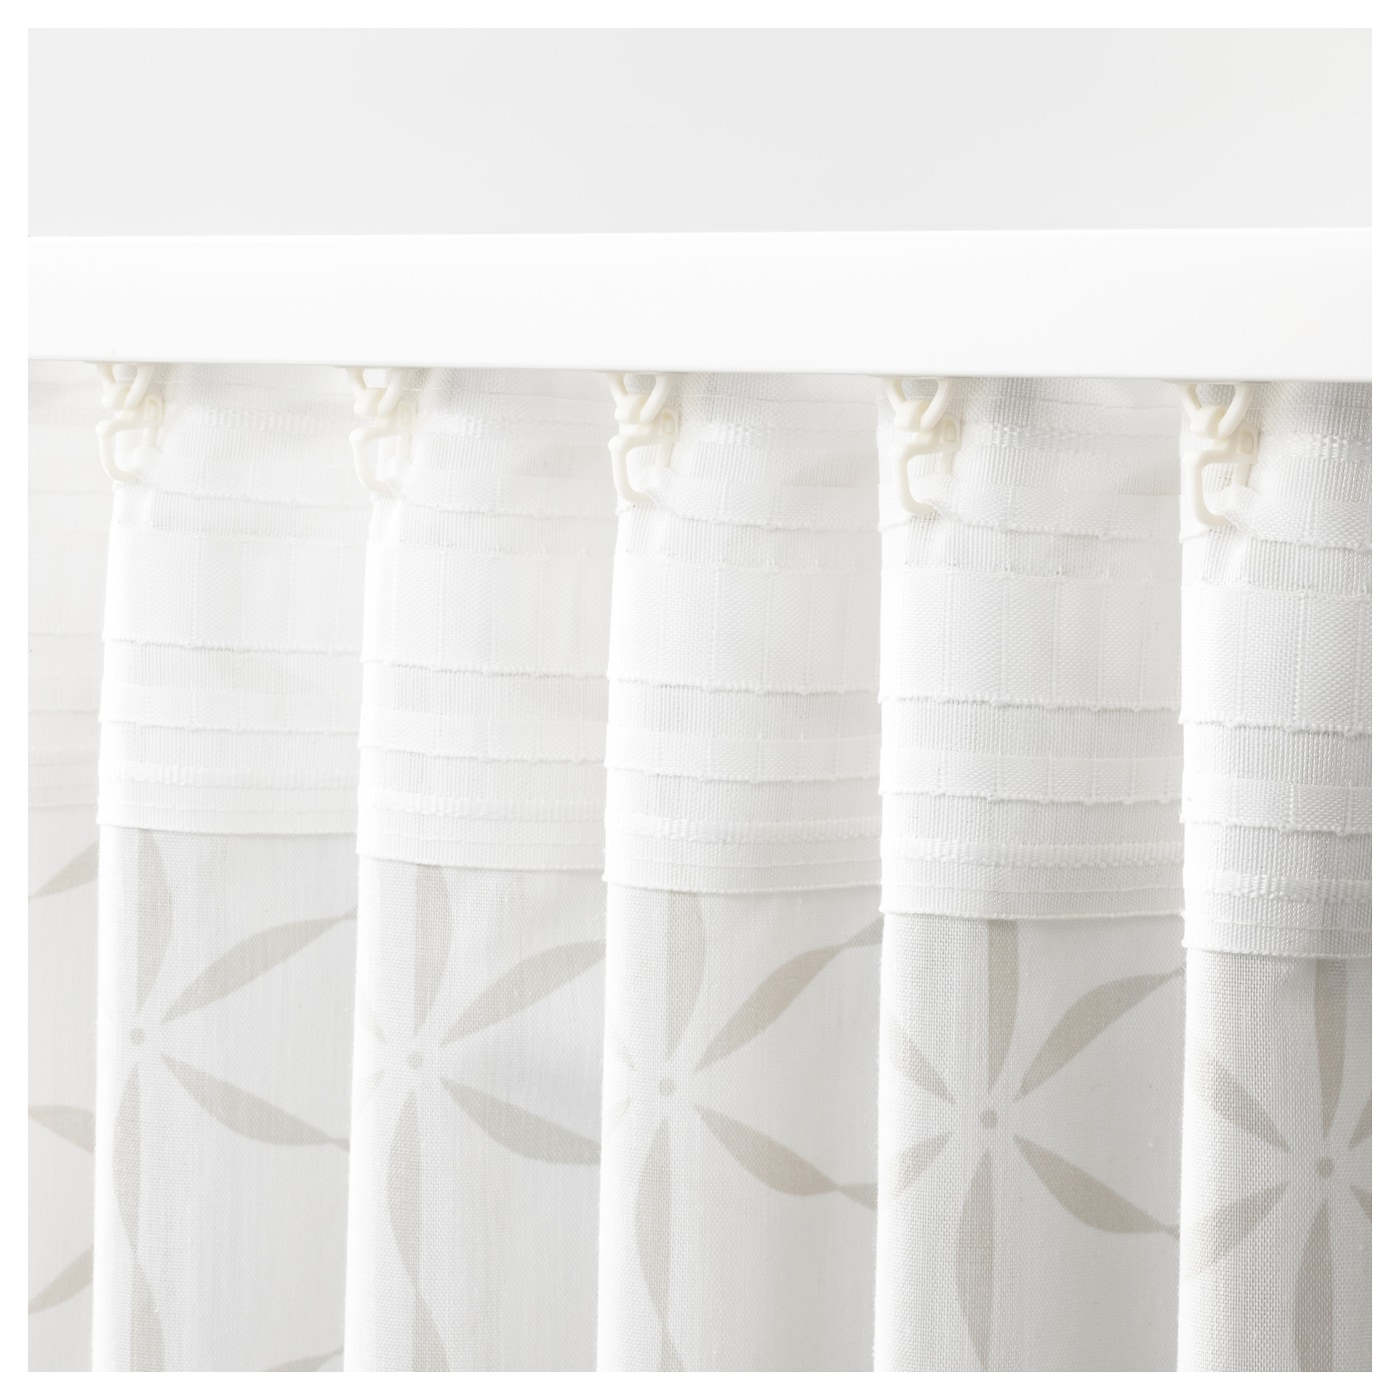 IKEA FJÄLLBINKA curtains, 1 pair The curtains can be used on a curtain rod or a curtain track.